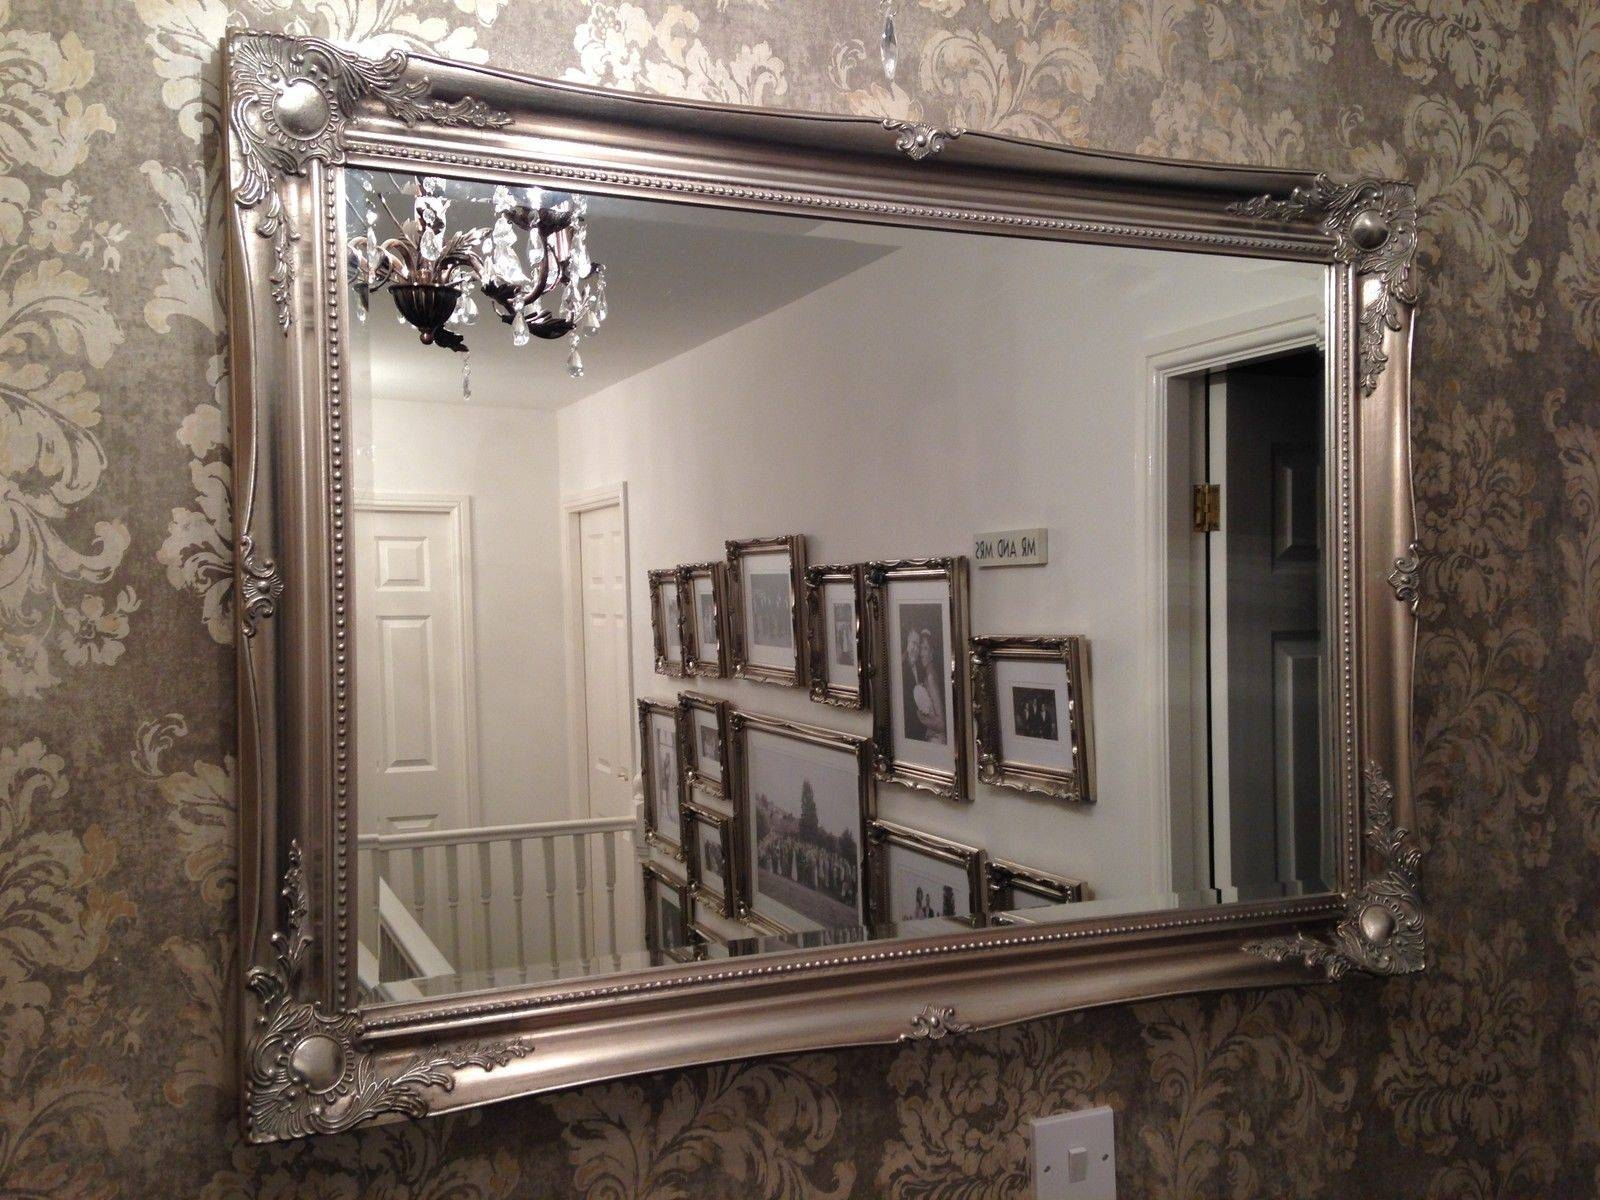 Large Antique Silver Elegant Wall Mirror - Free Uk Postage throughout Silver Bevelled Mirrors (Image 16 of 25)